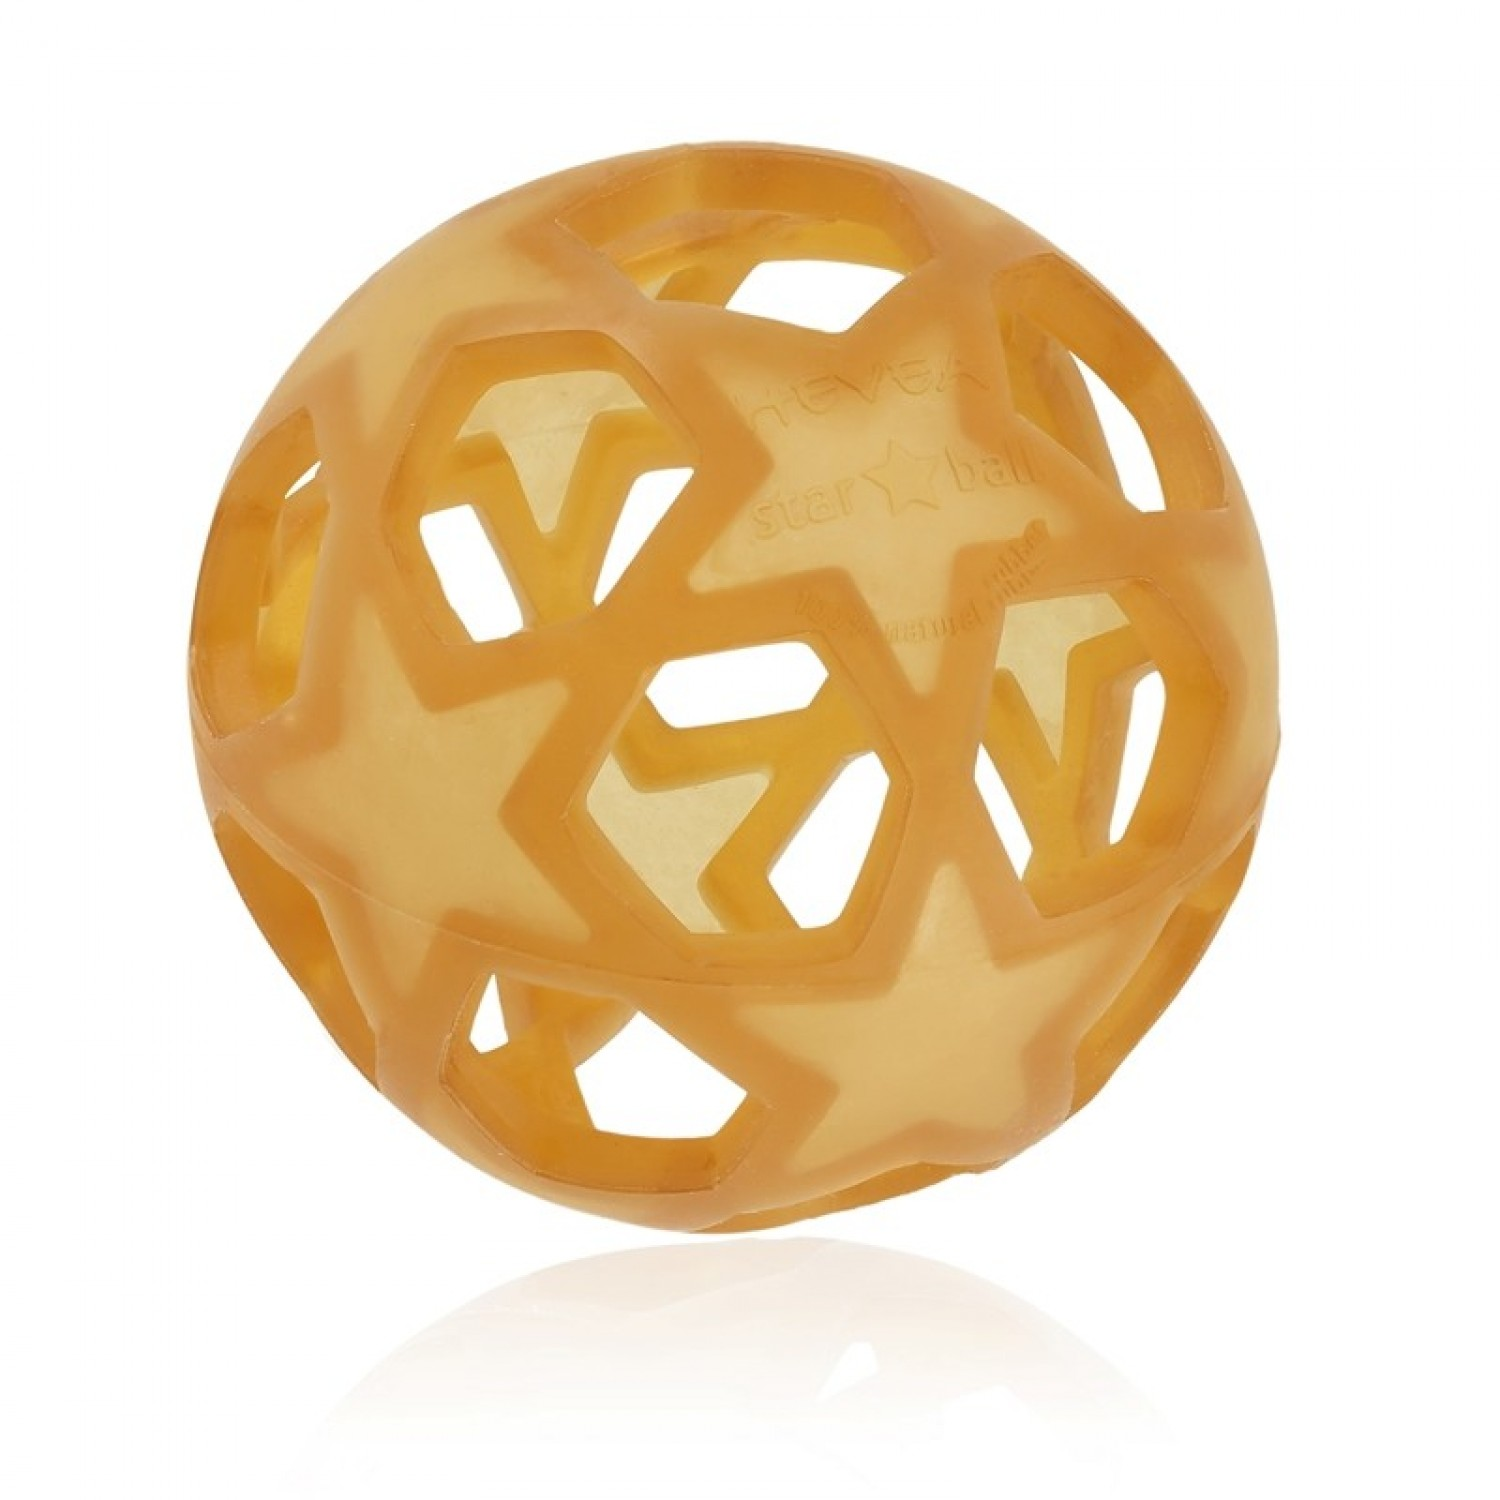 Hevea Natural Rubber Star Ball - eco toys